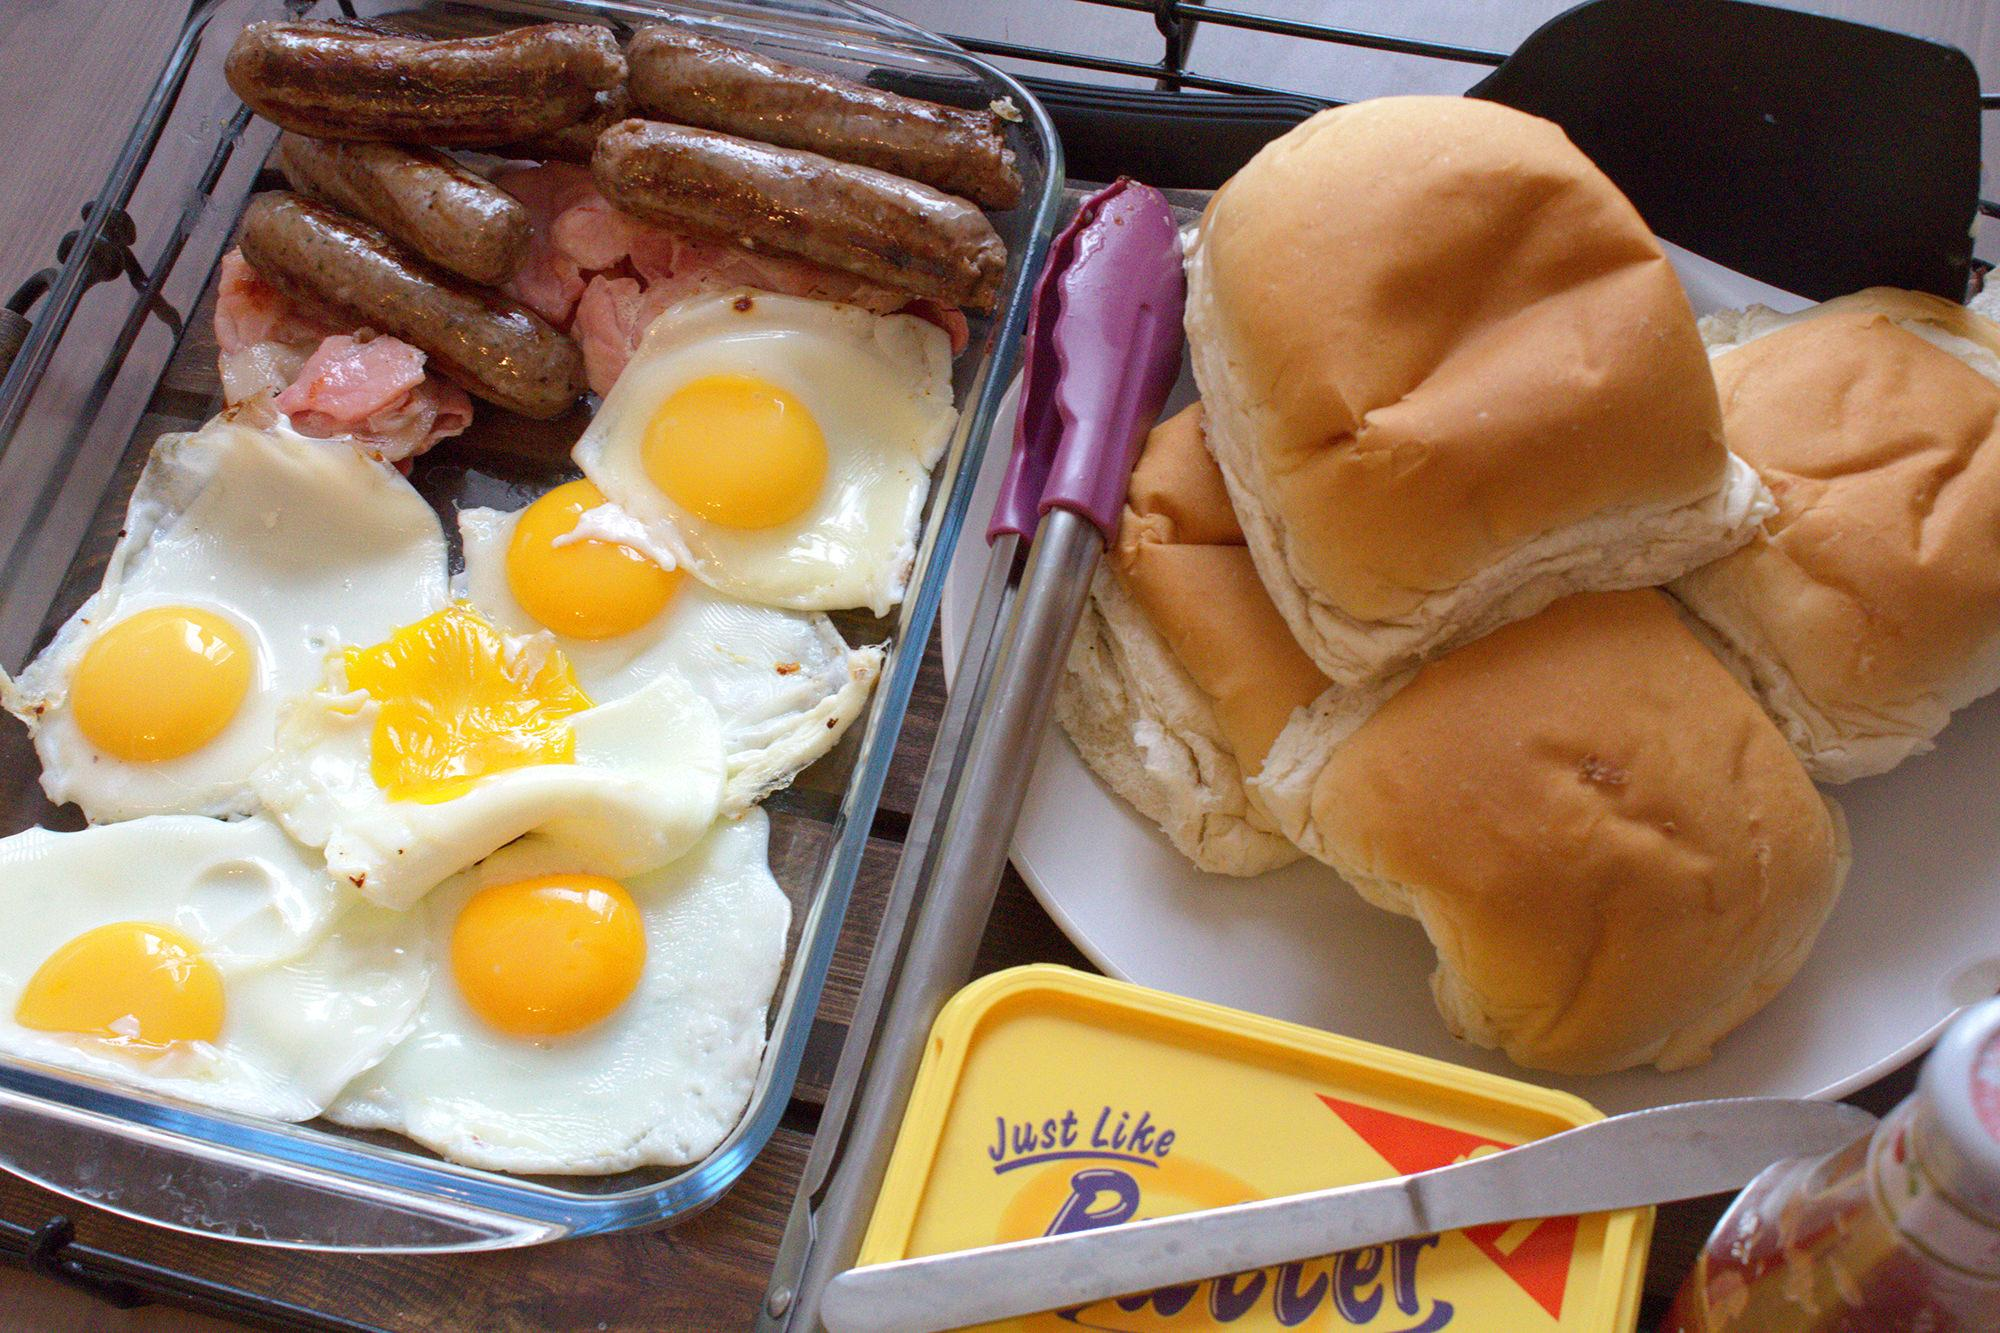 #Brunch is served! All grilled so less fat too. #breakfast #healthyfryup #WatchDaddyCook http://t.co/ZJI9XPhqly